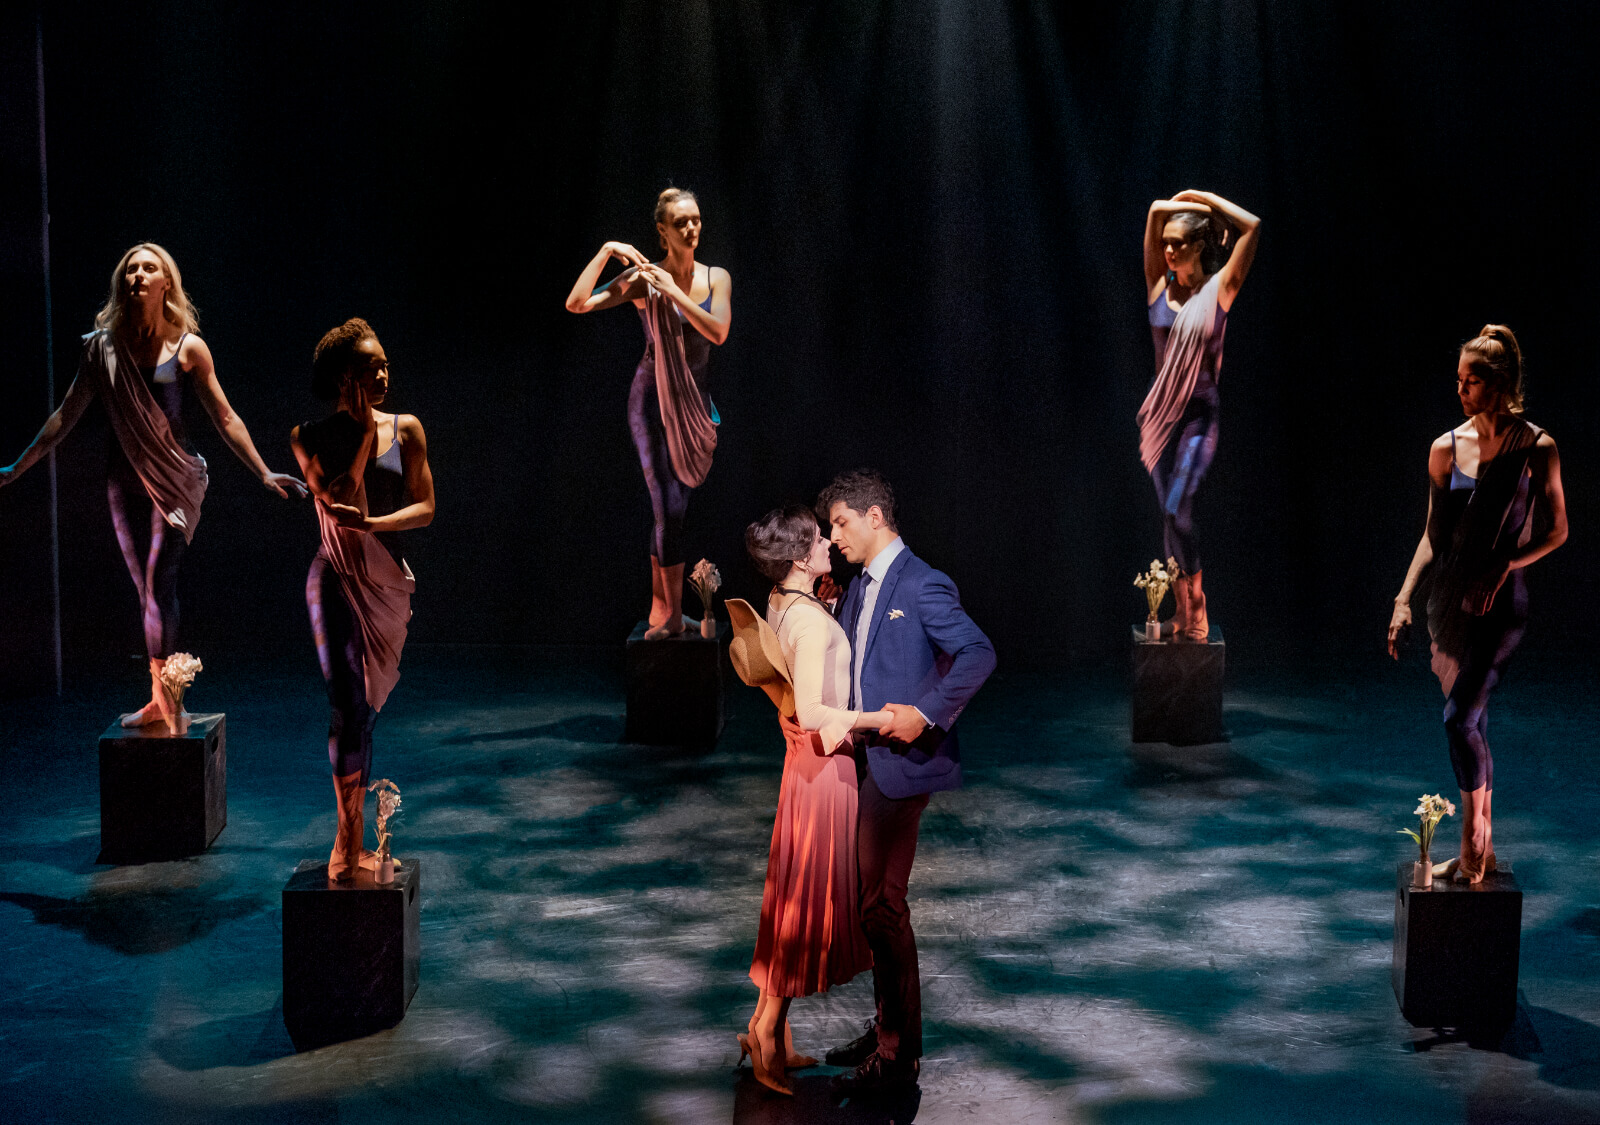 The company of The Beast in the Jungle in the Garden. The women create statues while Irina Dvororenko and Tony Yazbeck in the center.